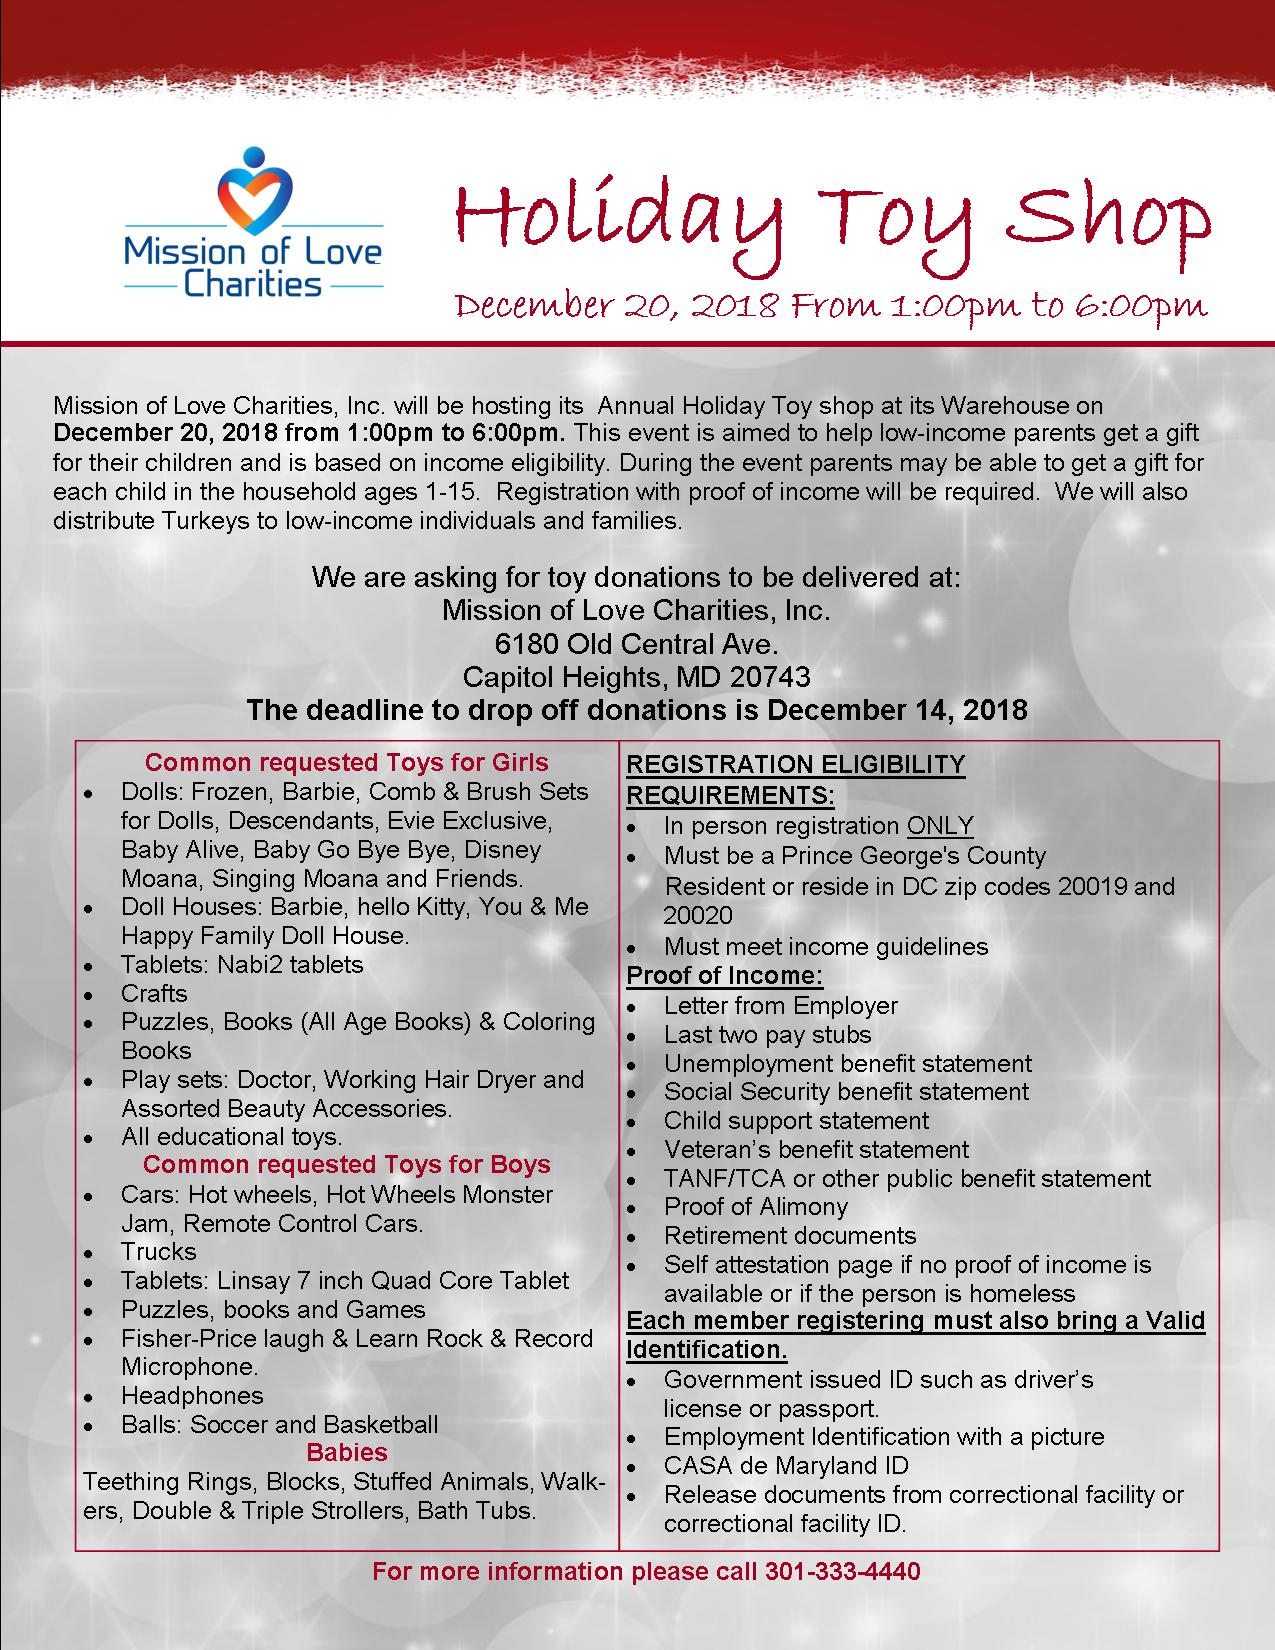 Holiday Toy Shop Flyer December 2018.jpg